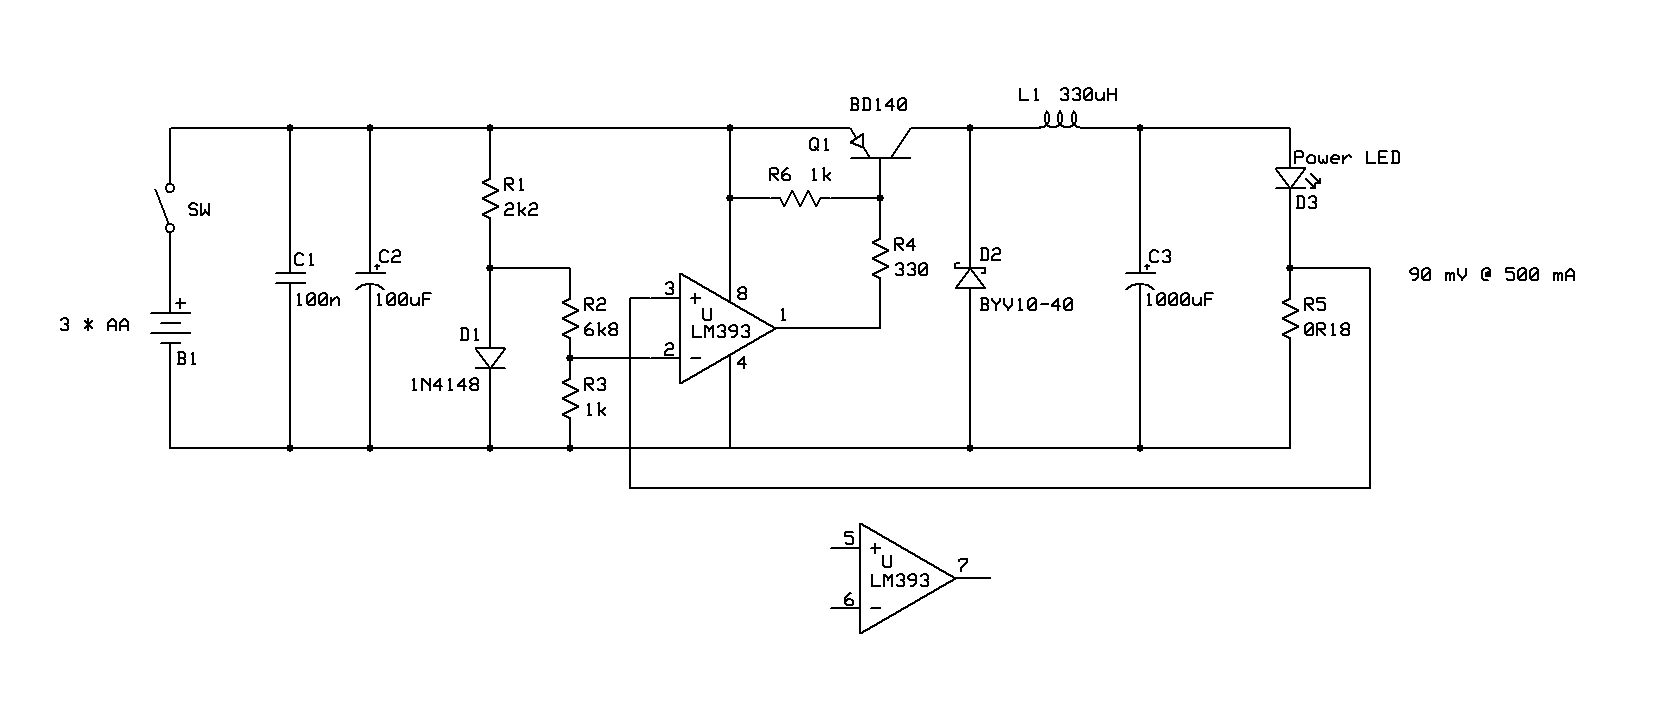 Constant Current Source Avr Freaks Cut Off By Lm324 Circuit Diagram Auto Lead Acid 555 And Thumbnail Rain2